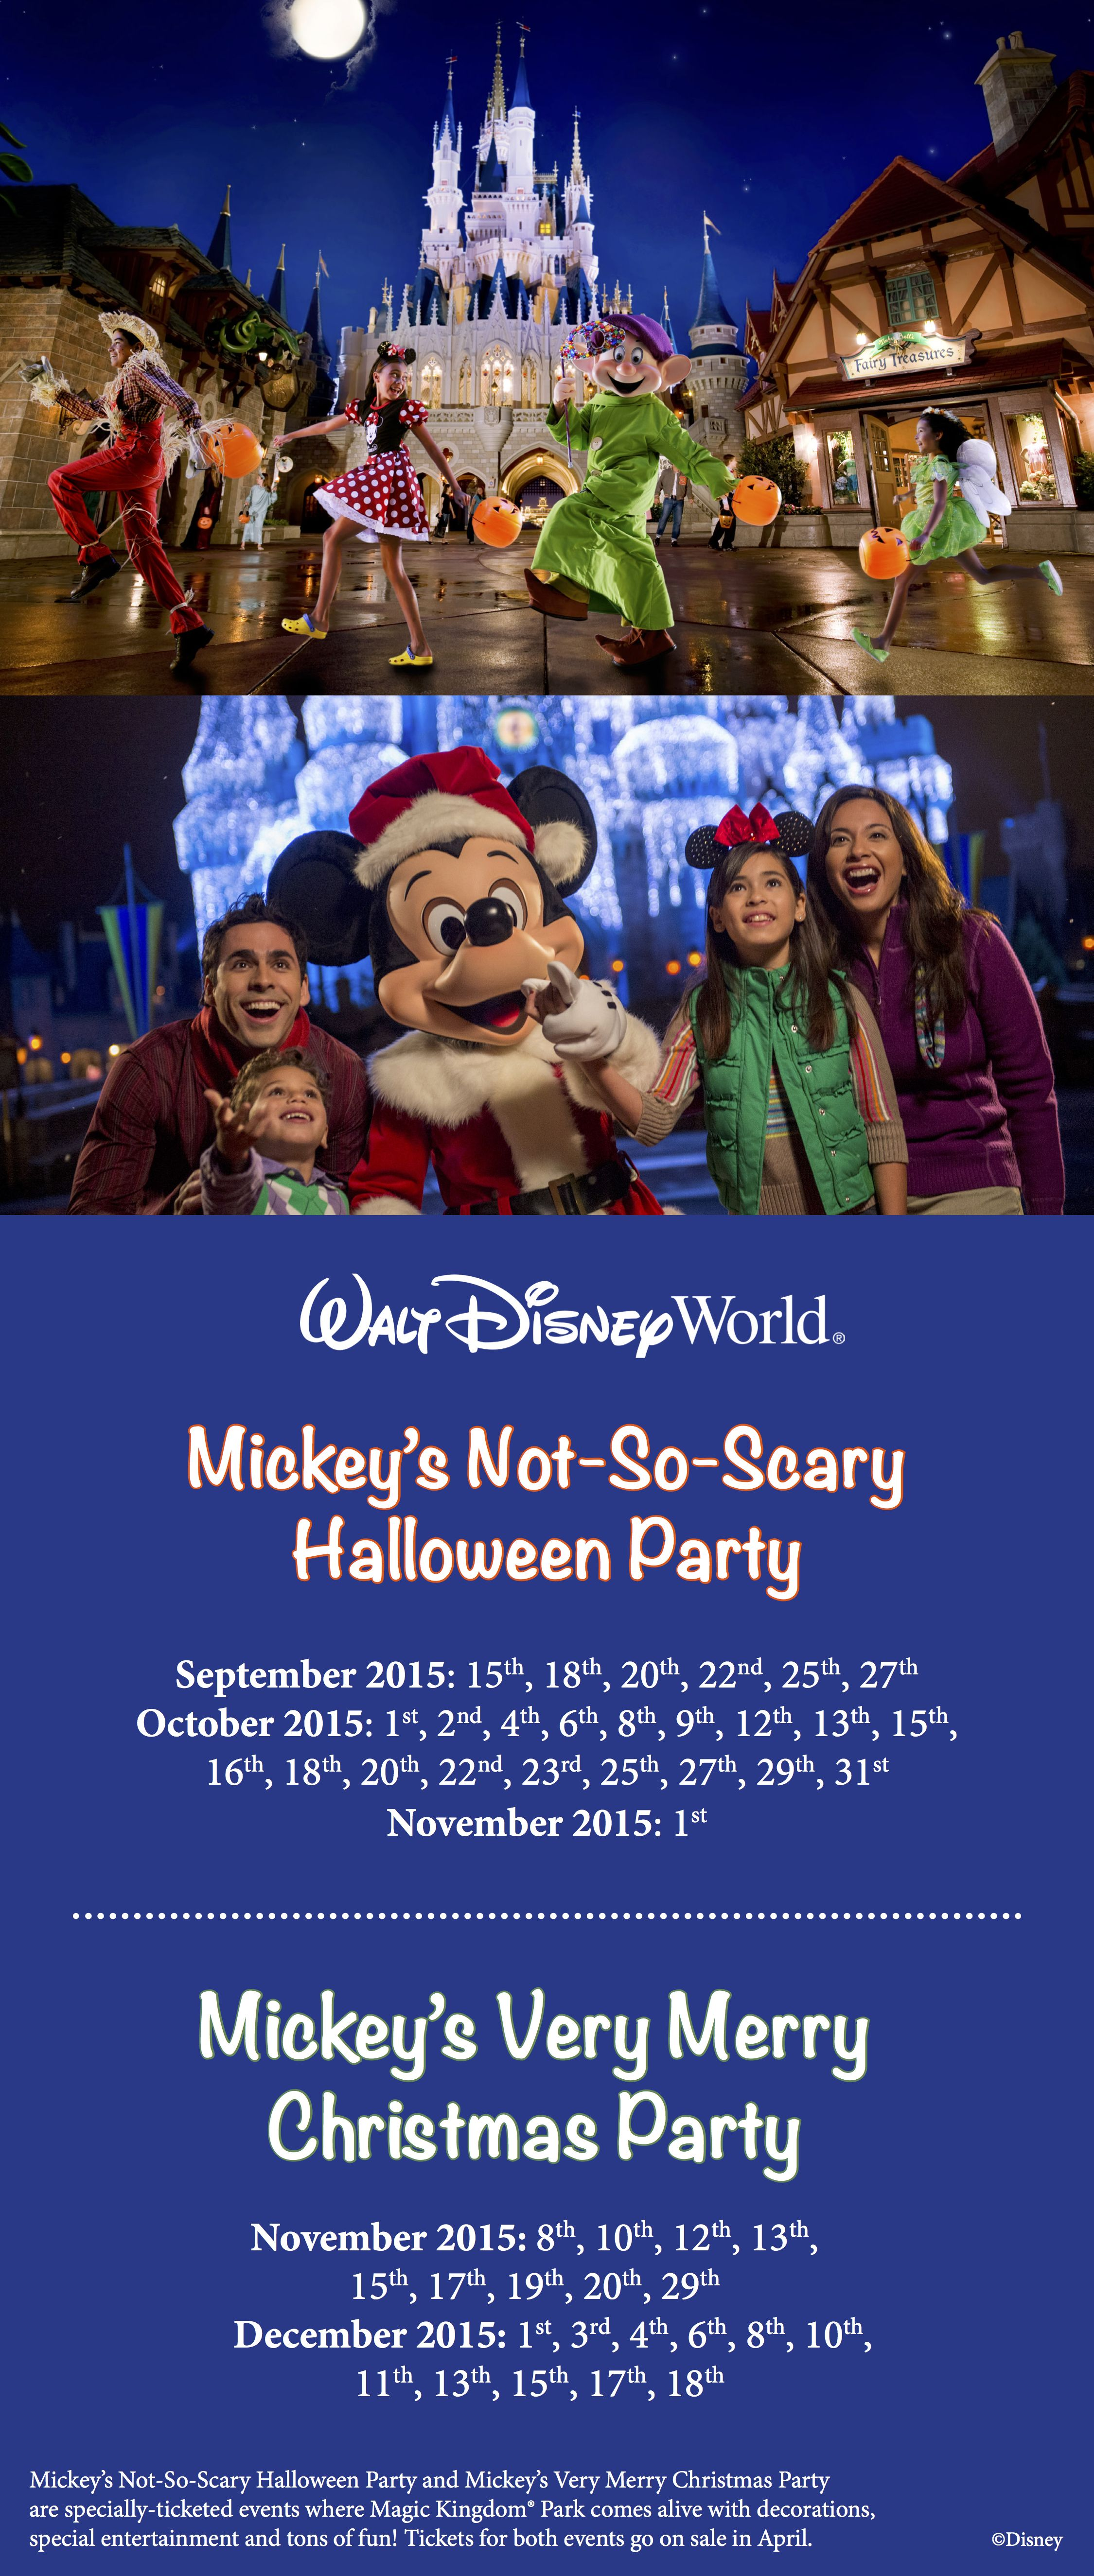 been fortunate enough to take our daughter to both of these fantastic disney events and will - Disney Christmas Party Tickets